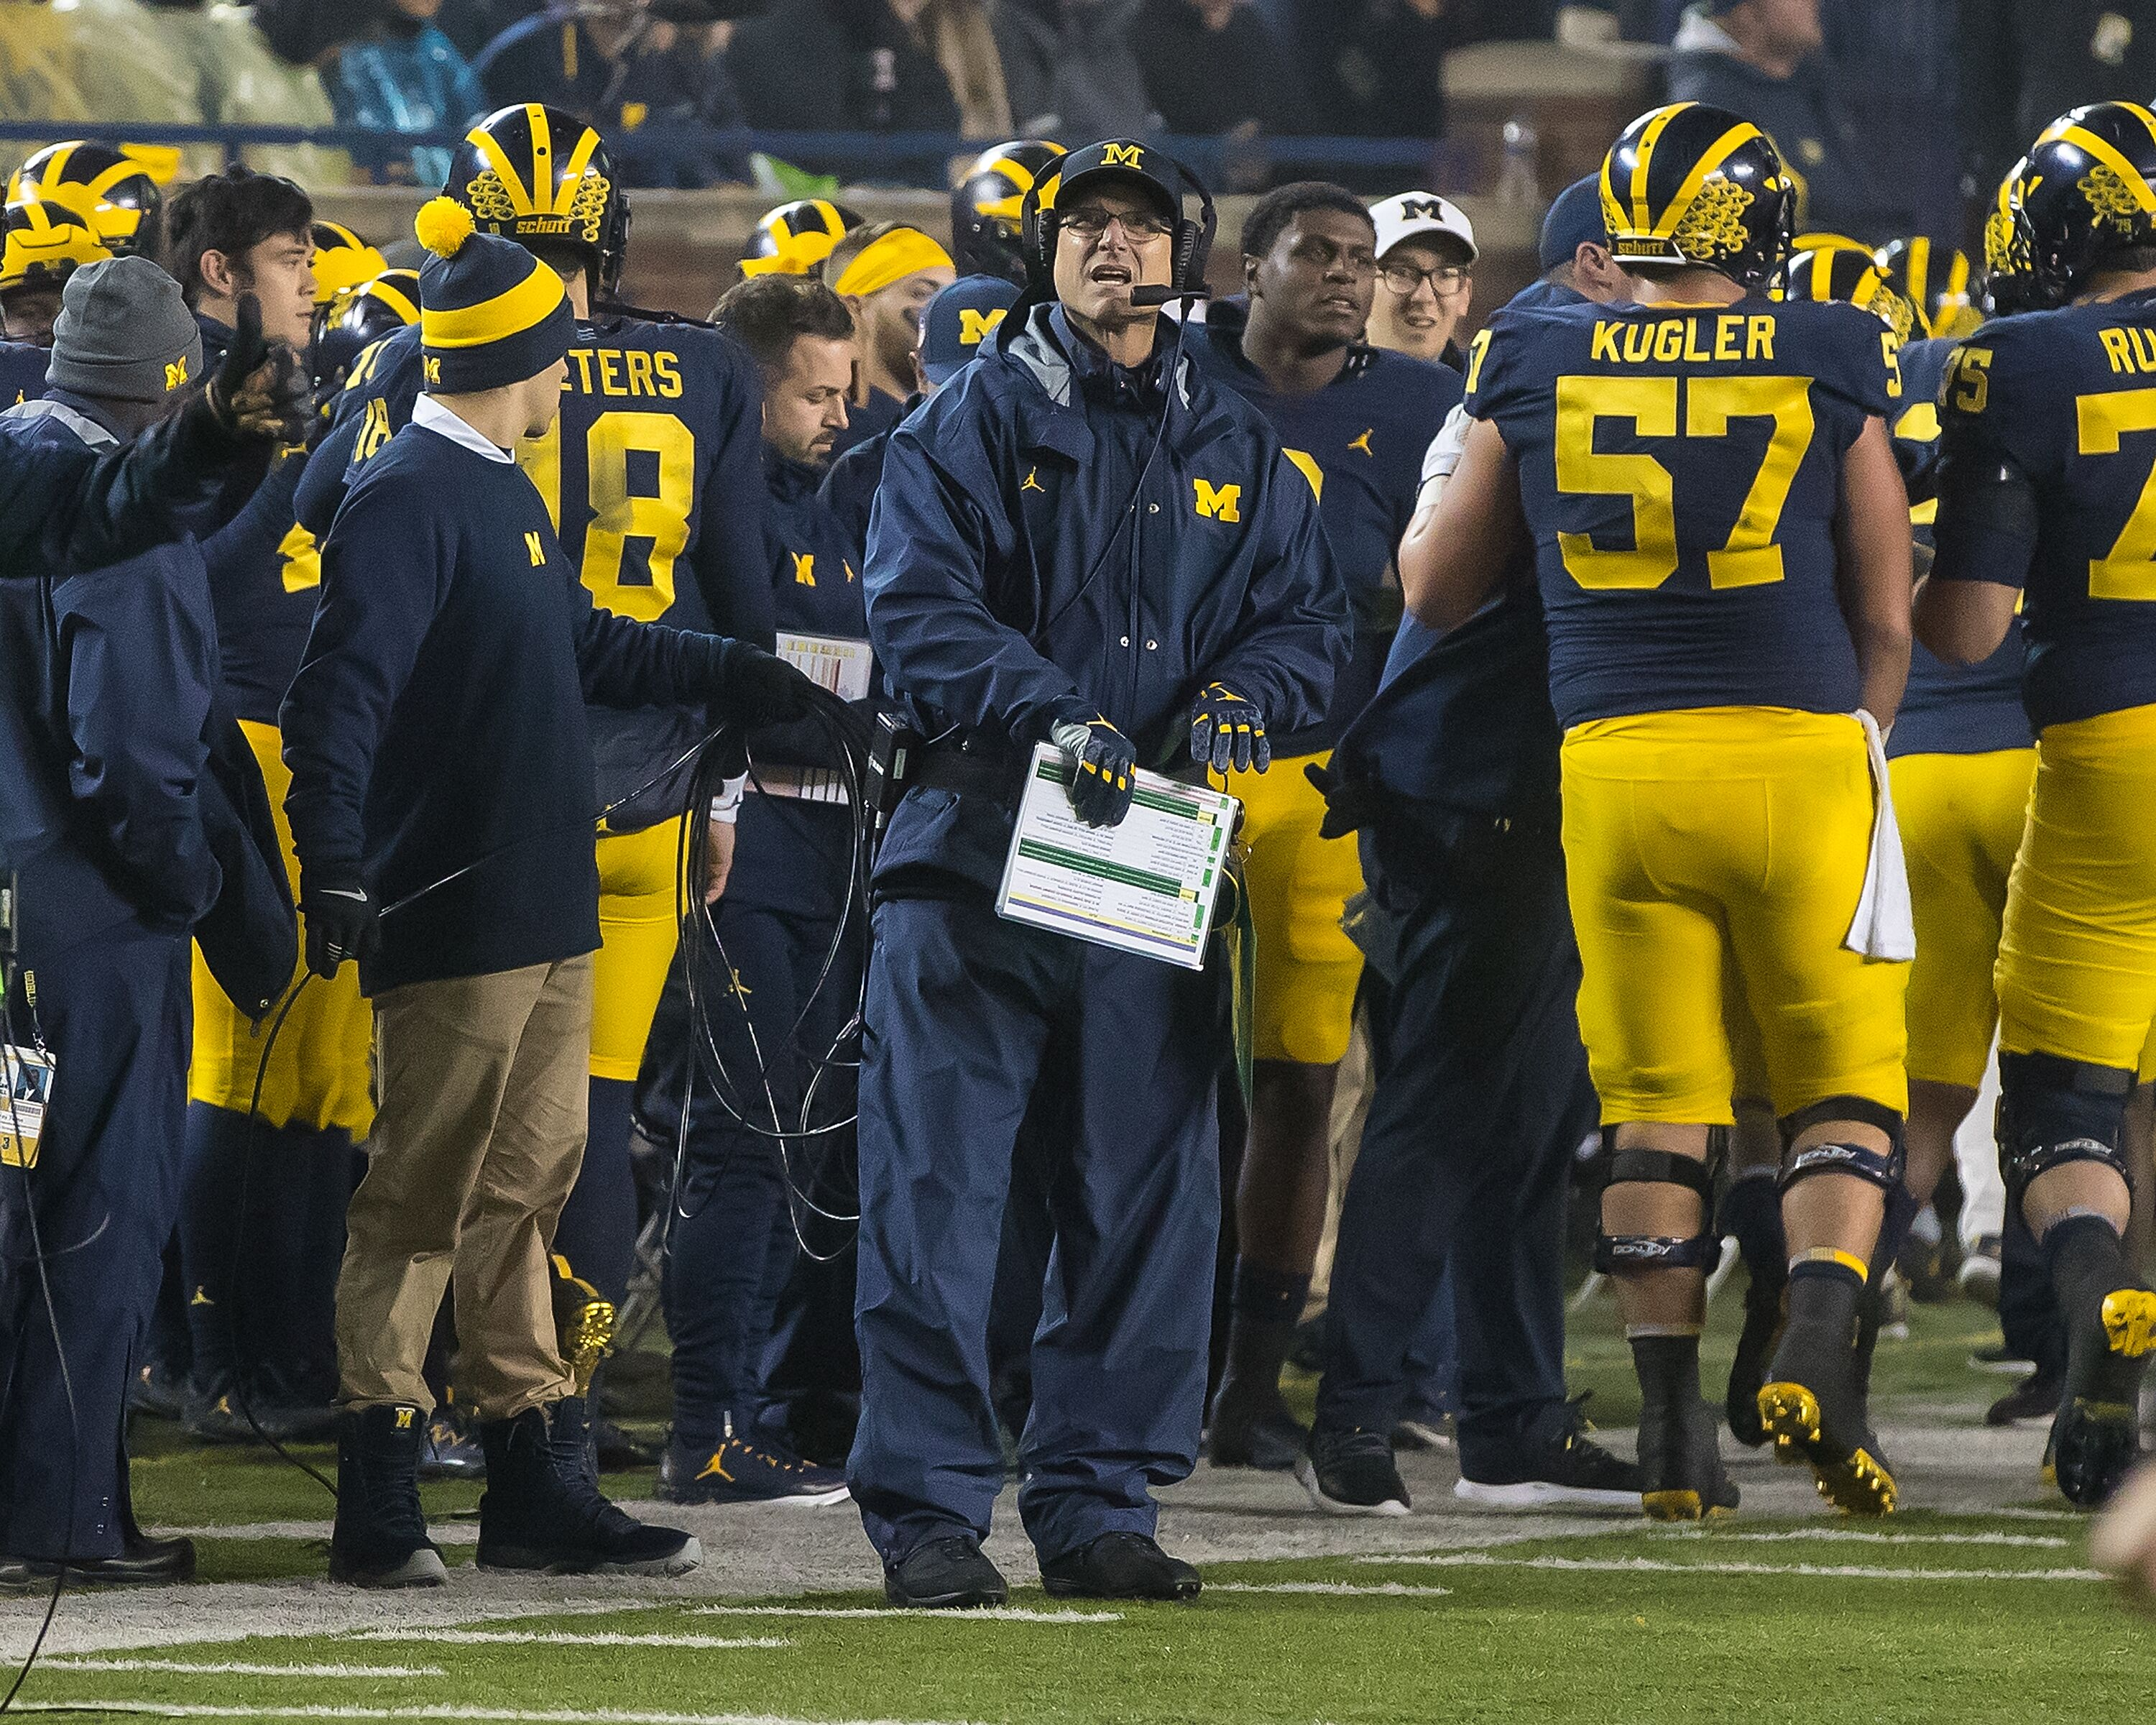 870346460-minnesota-v-michigan.jpg